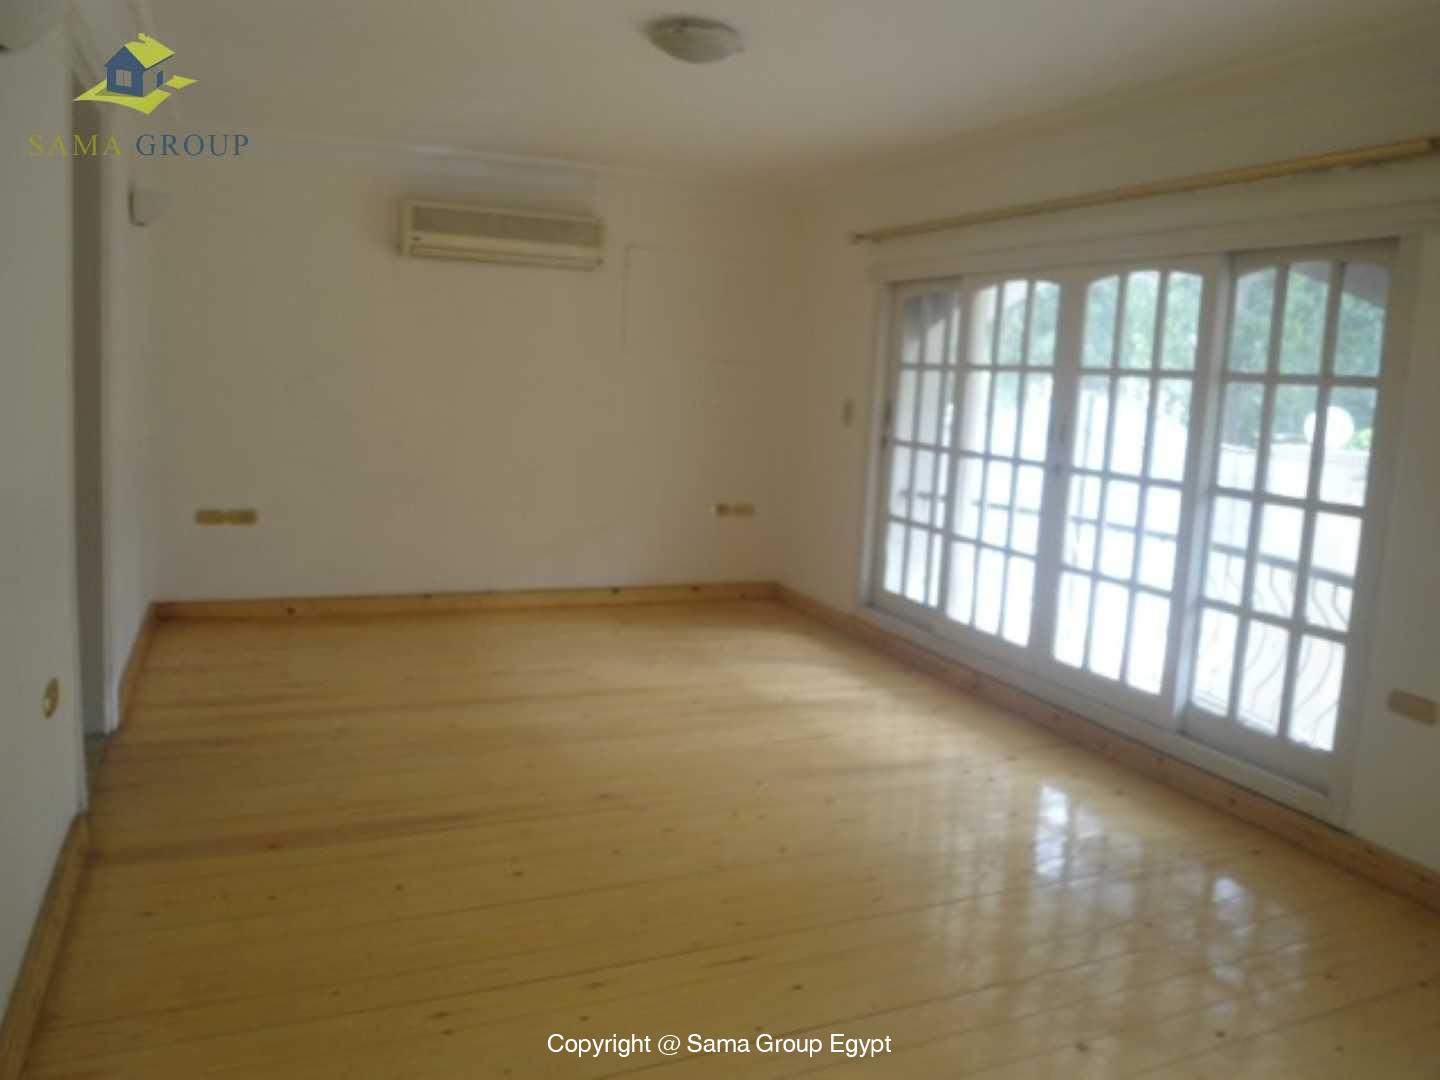 Ground Floor Duplex With Pool For Rent In Maadi,Semi furnished,Ground Floor NO #14